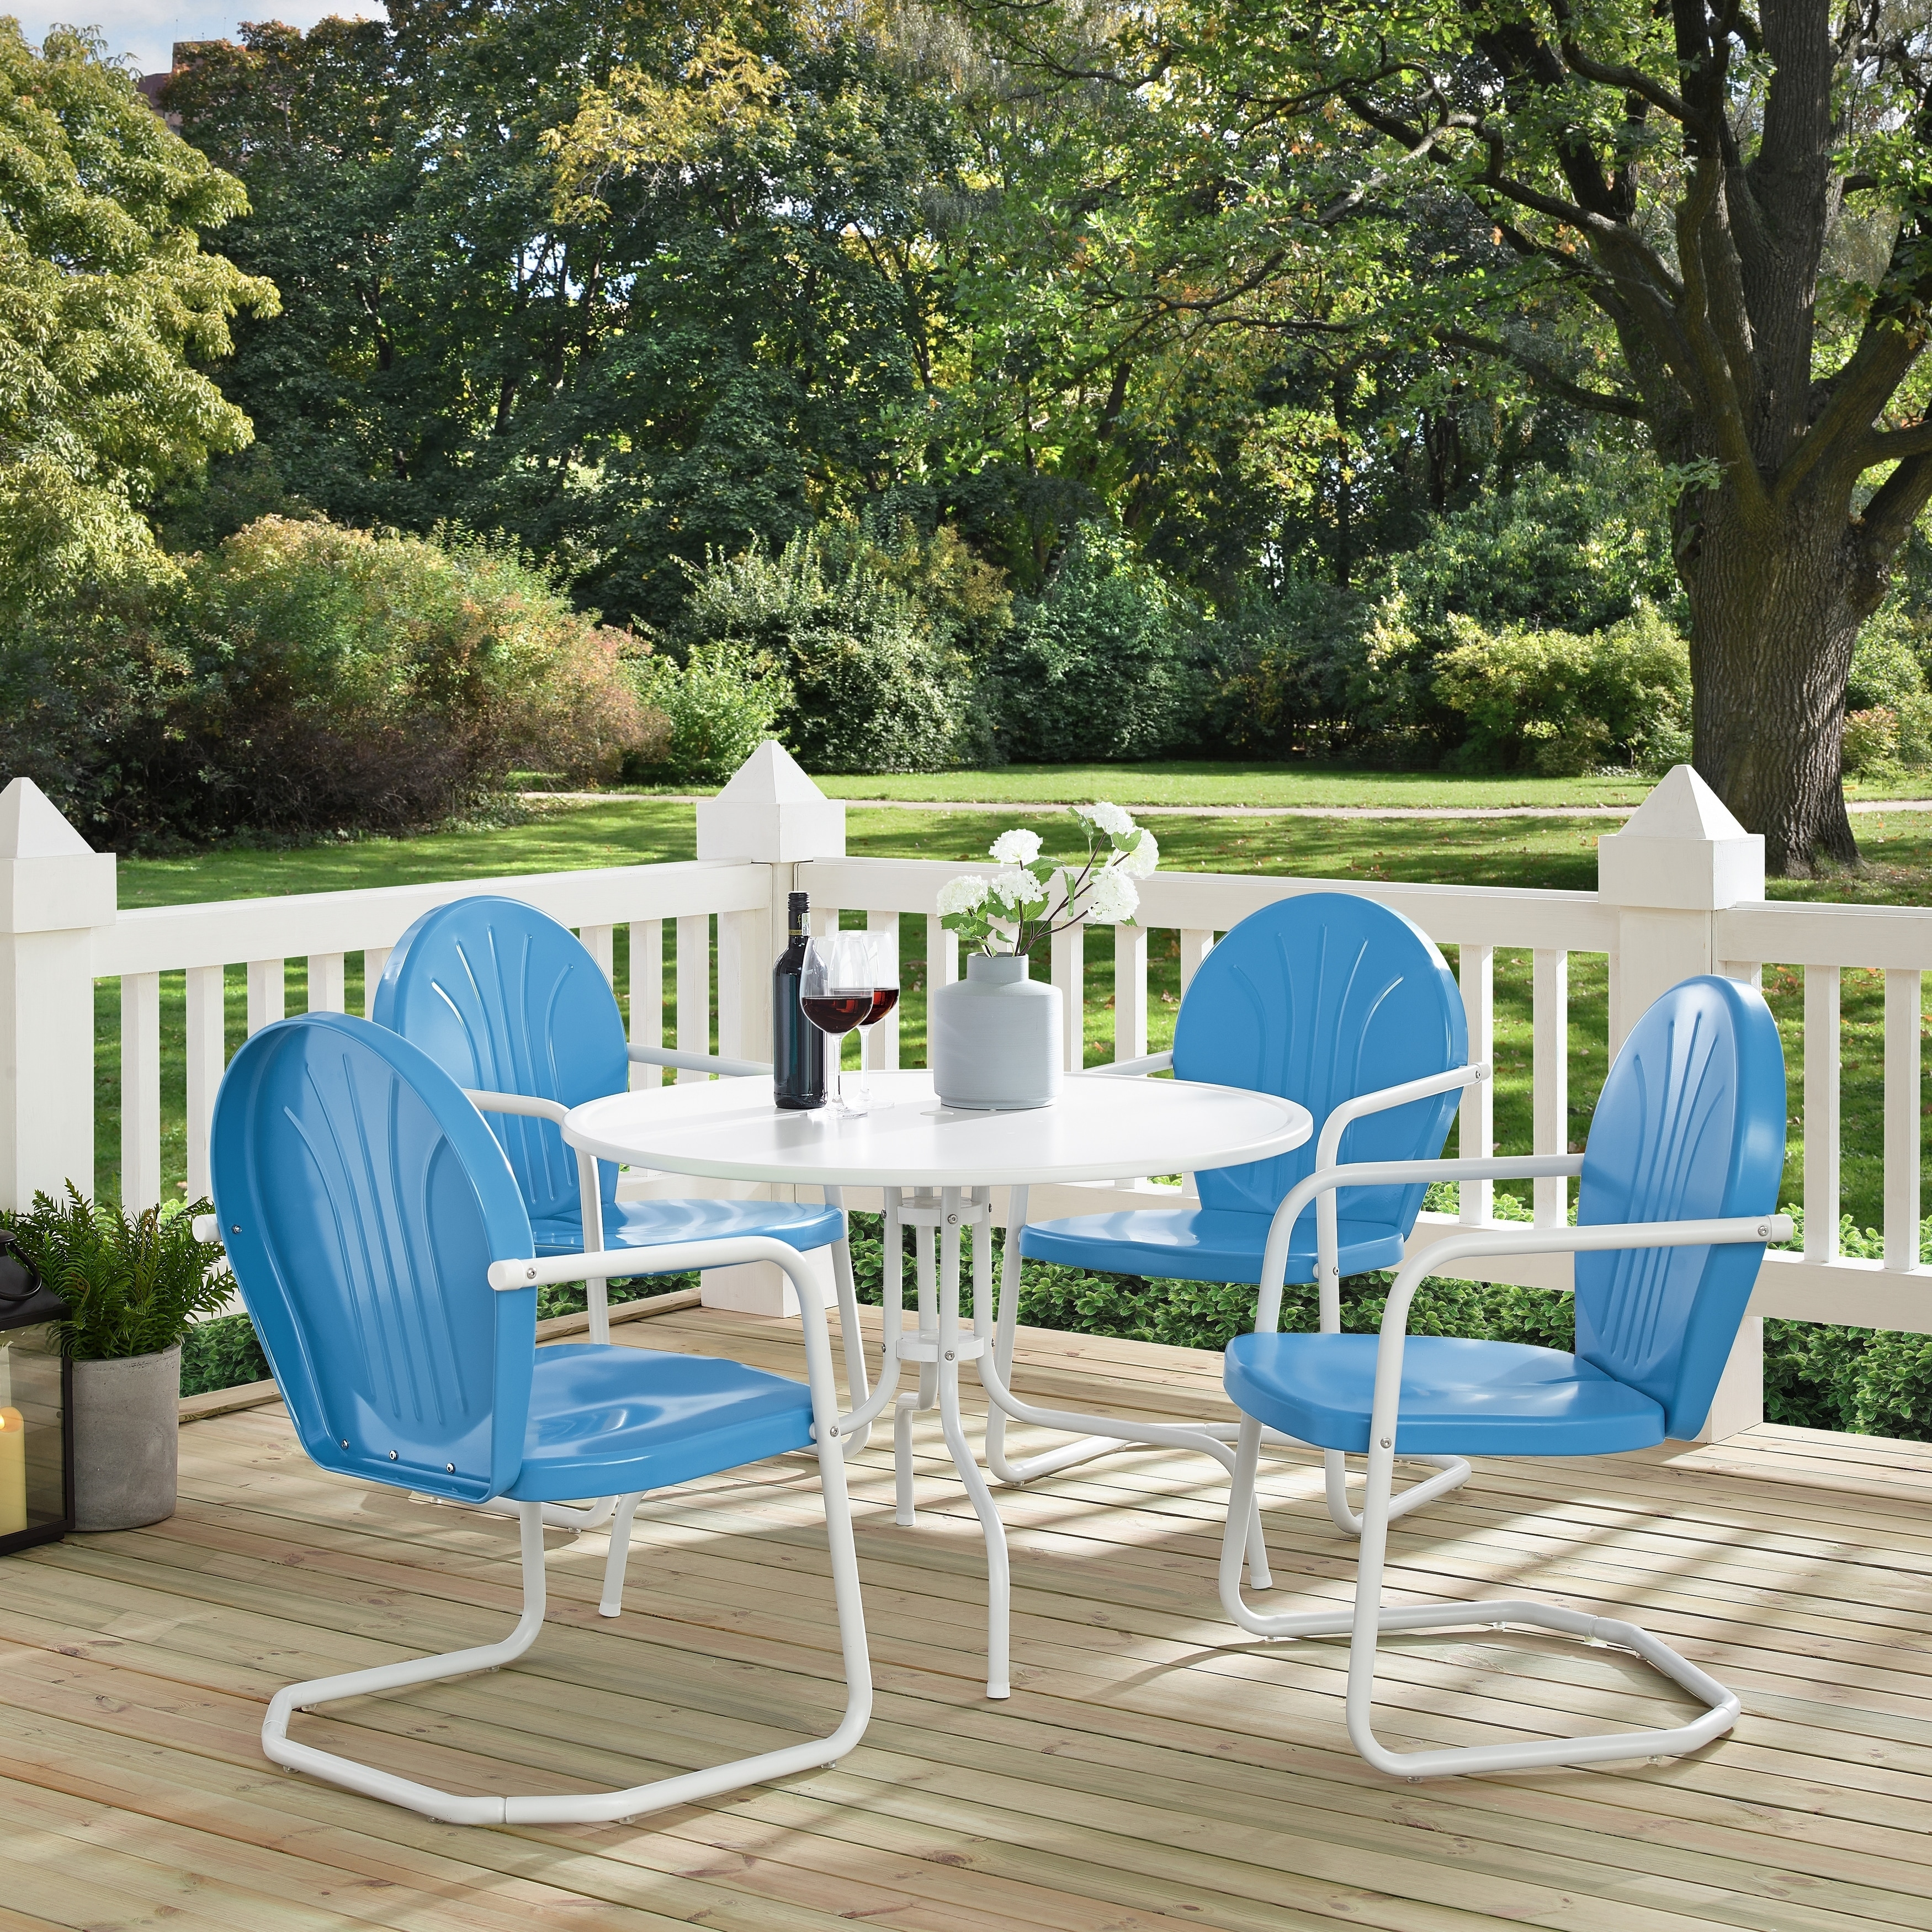 Overstock.com & Vintage Patio Furniture | Find Great Outdoor Seating ...